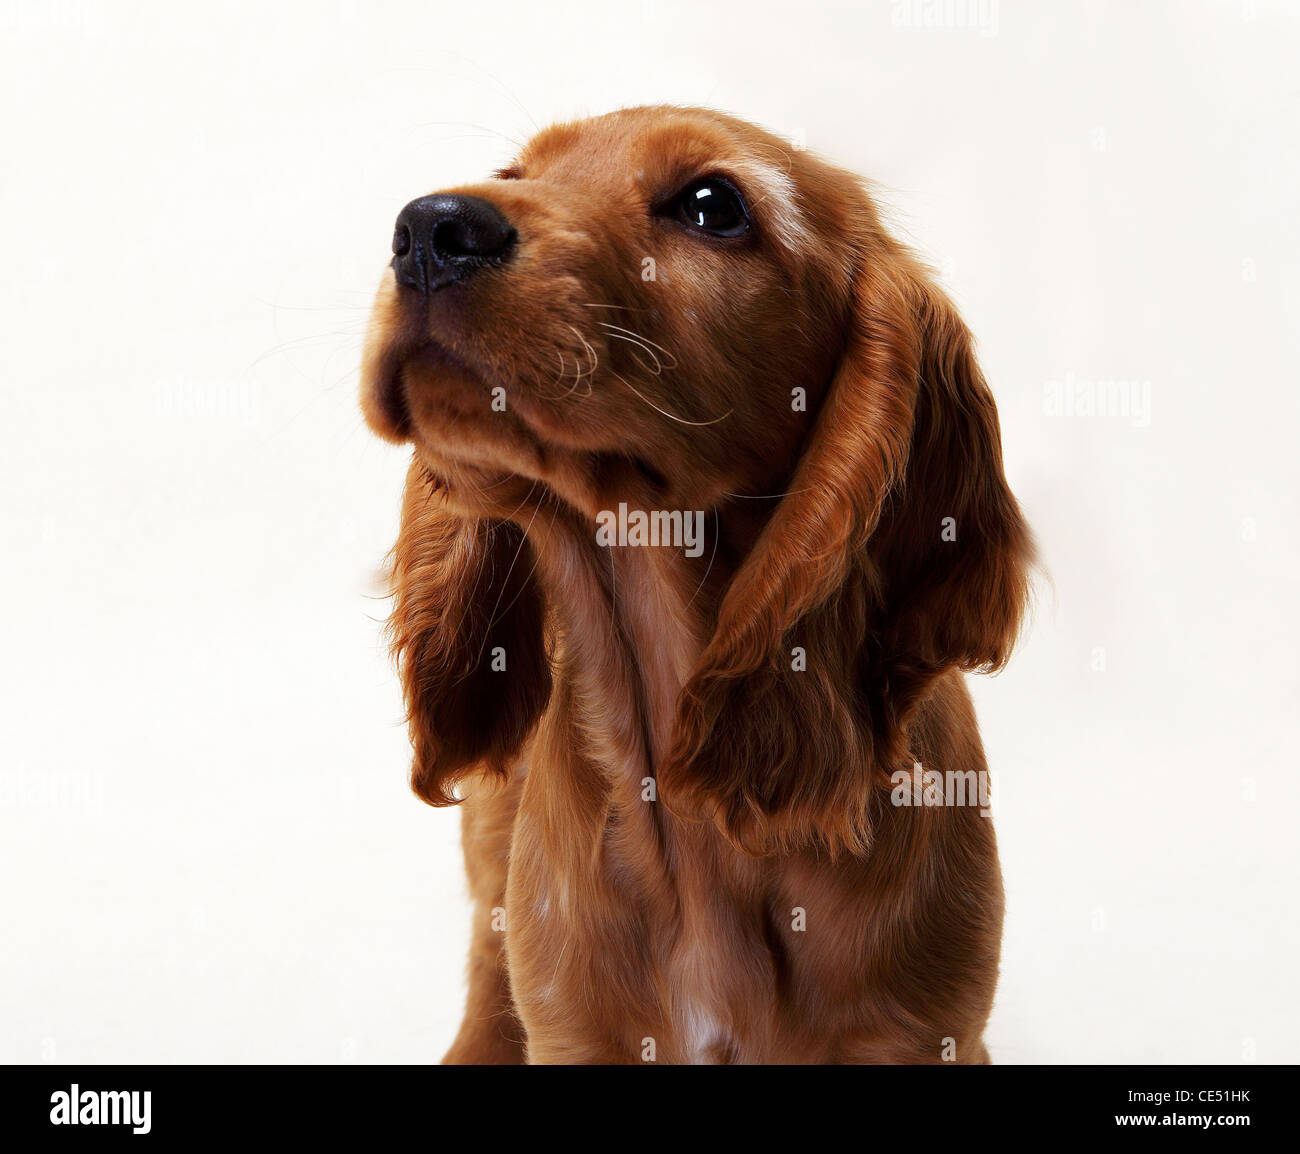 A Working Cocker Spaniel looking away - Stock Image